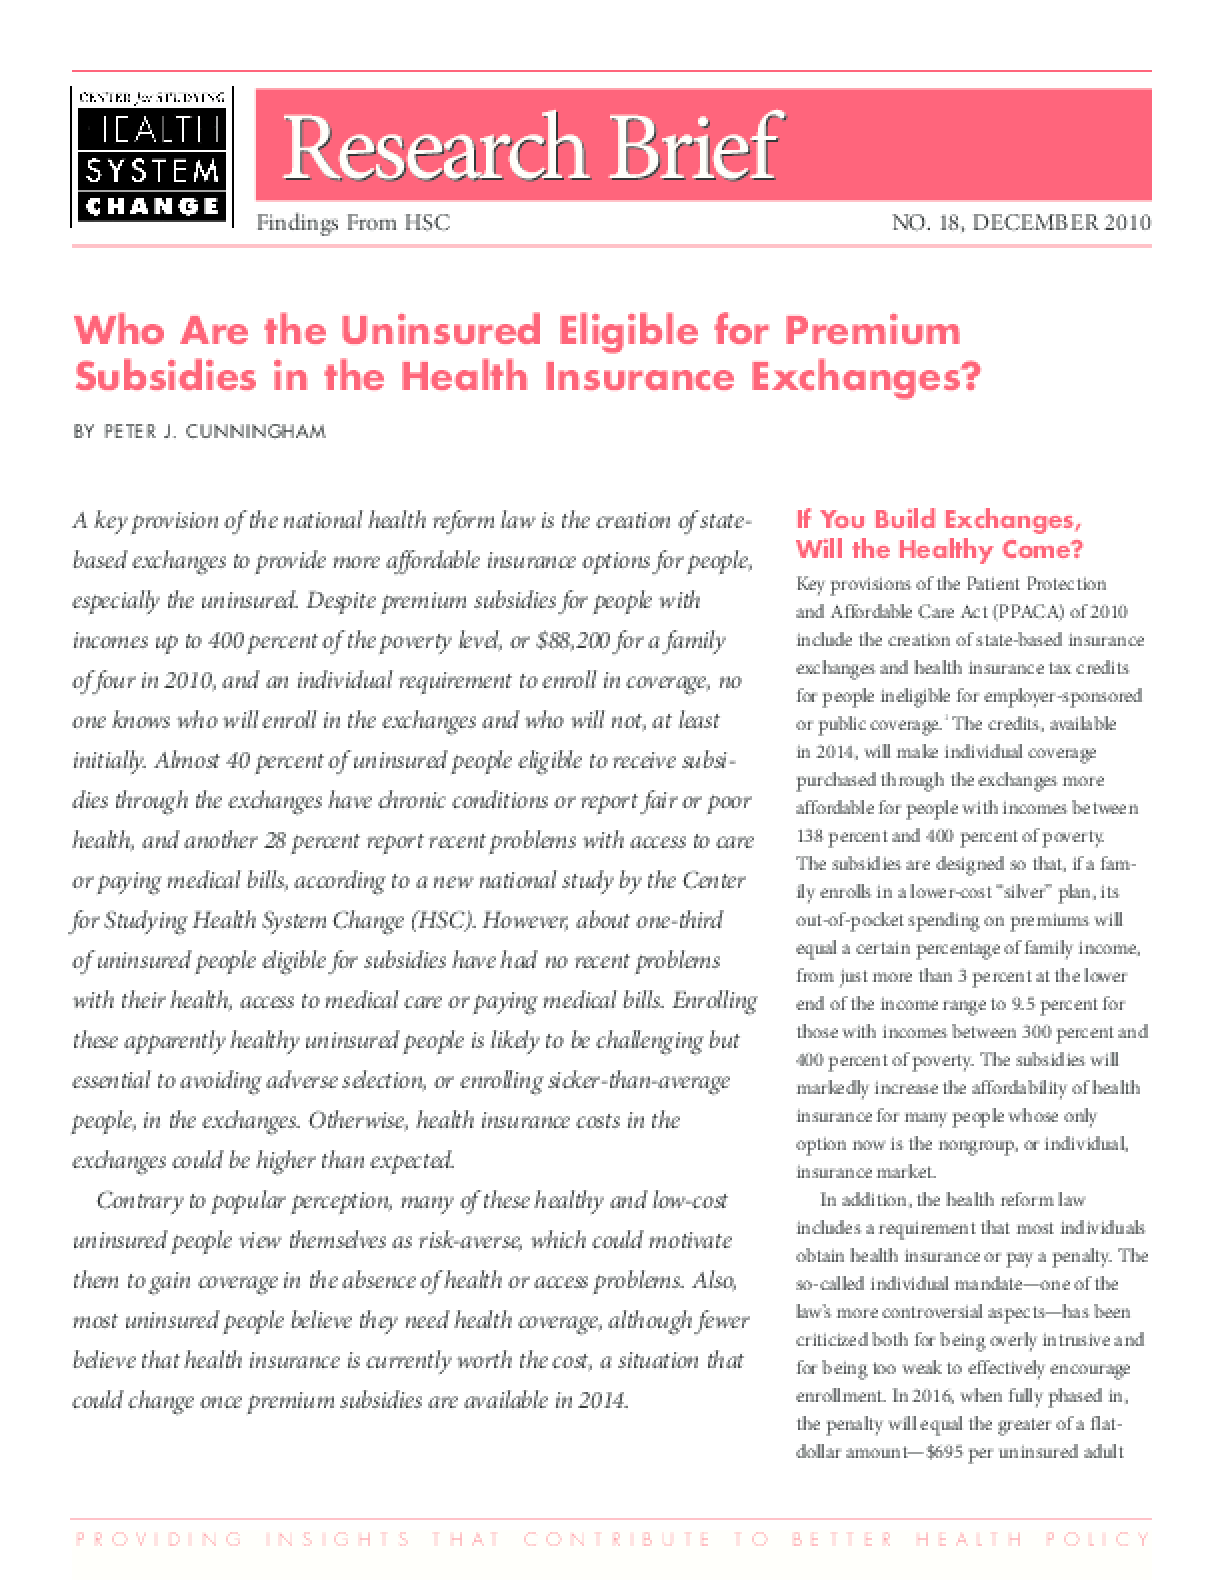 Who Are the Uninsured Eligible for Premium Subsidies in the Health Insurance Exchanges?